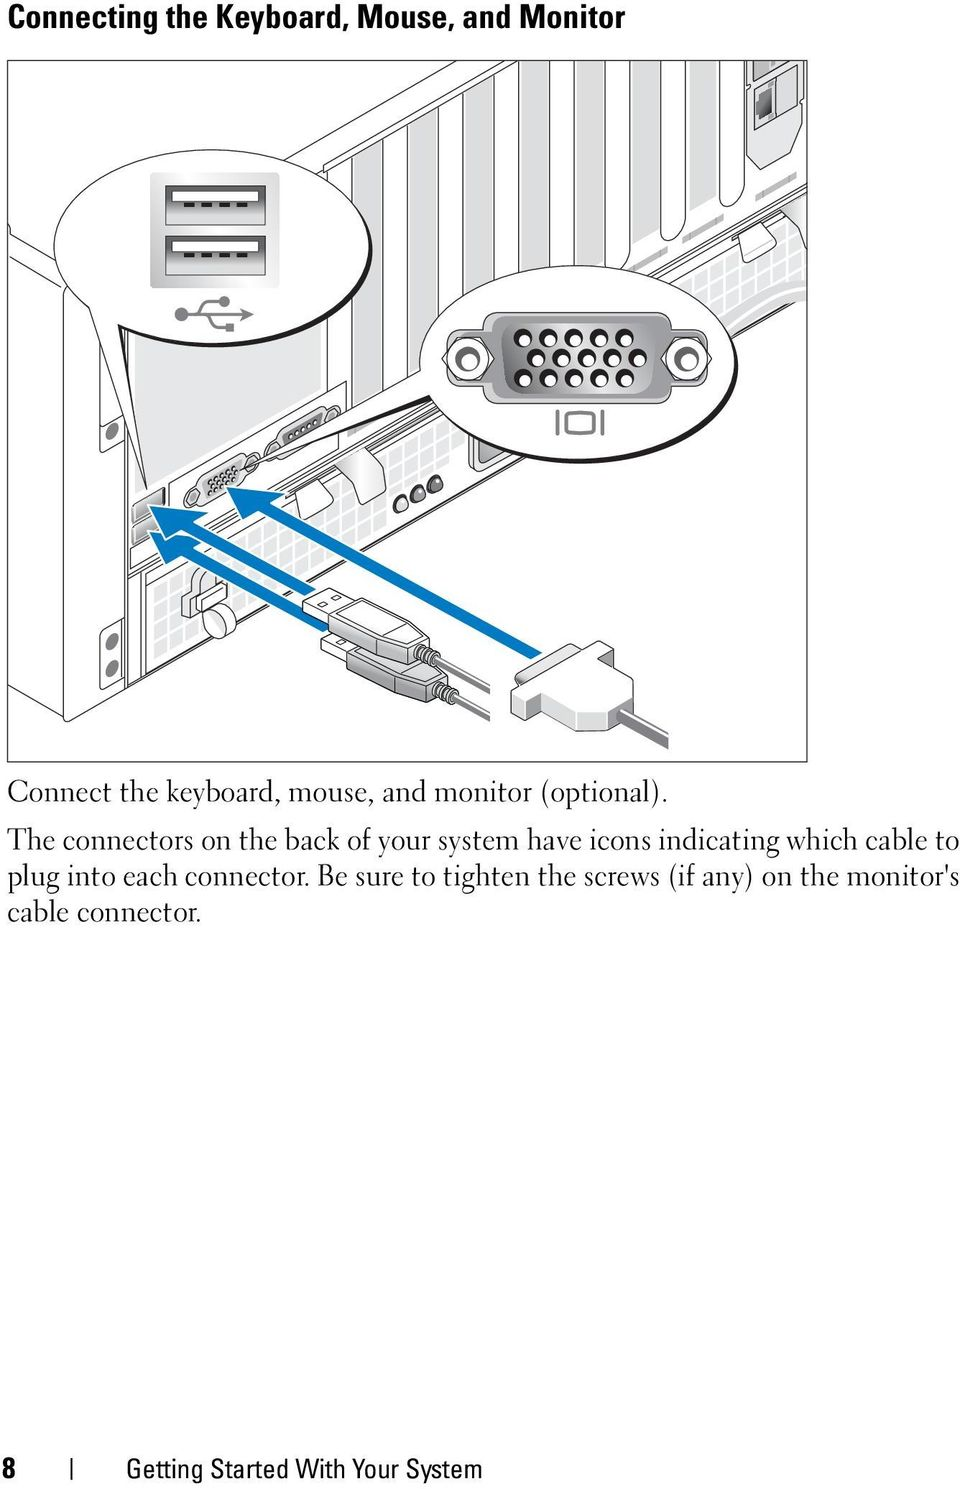 The connectors on the back of your system have icons indicating which cable